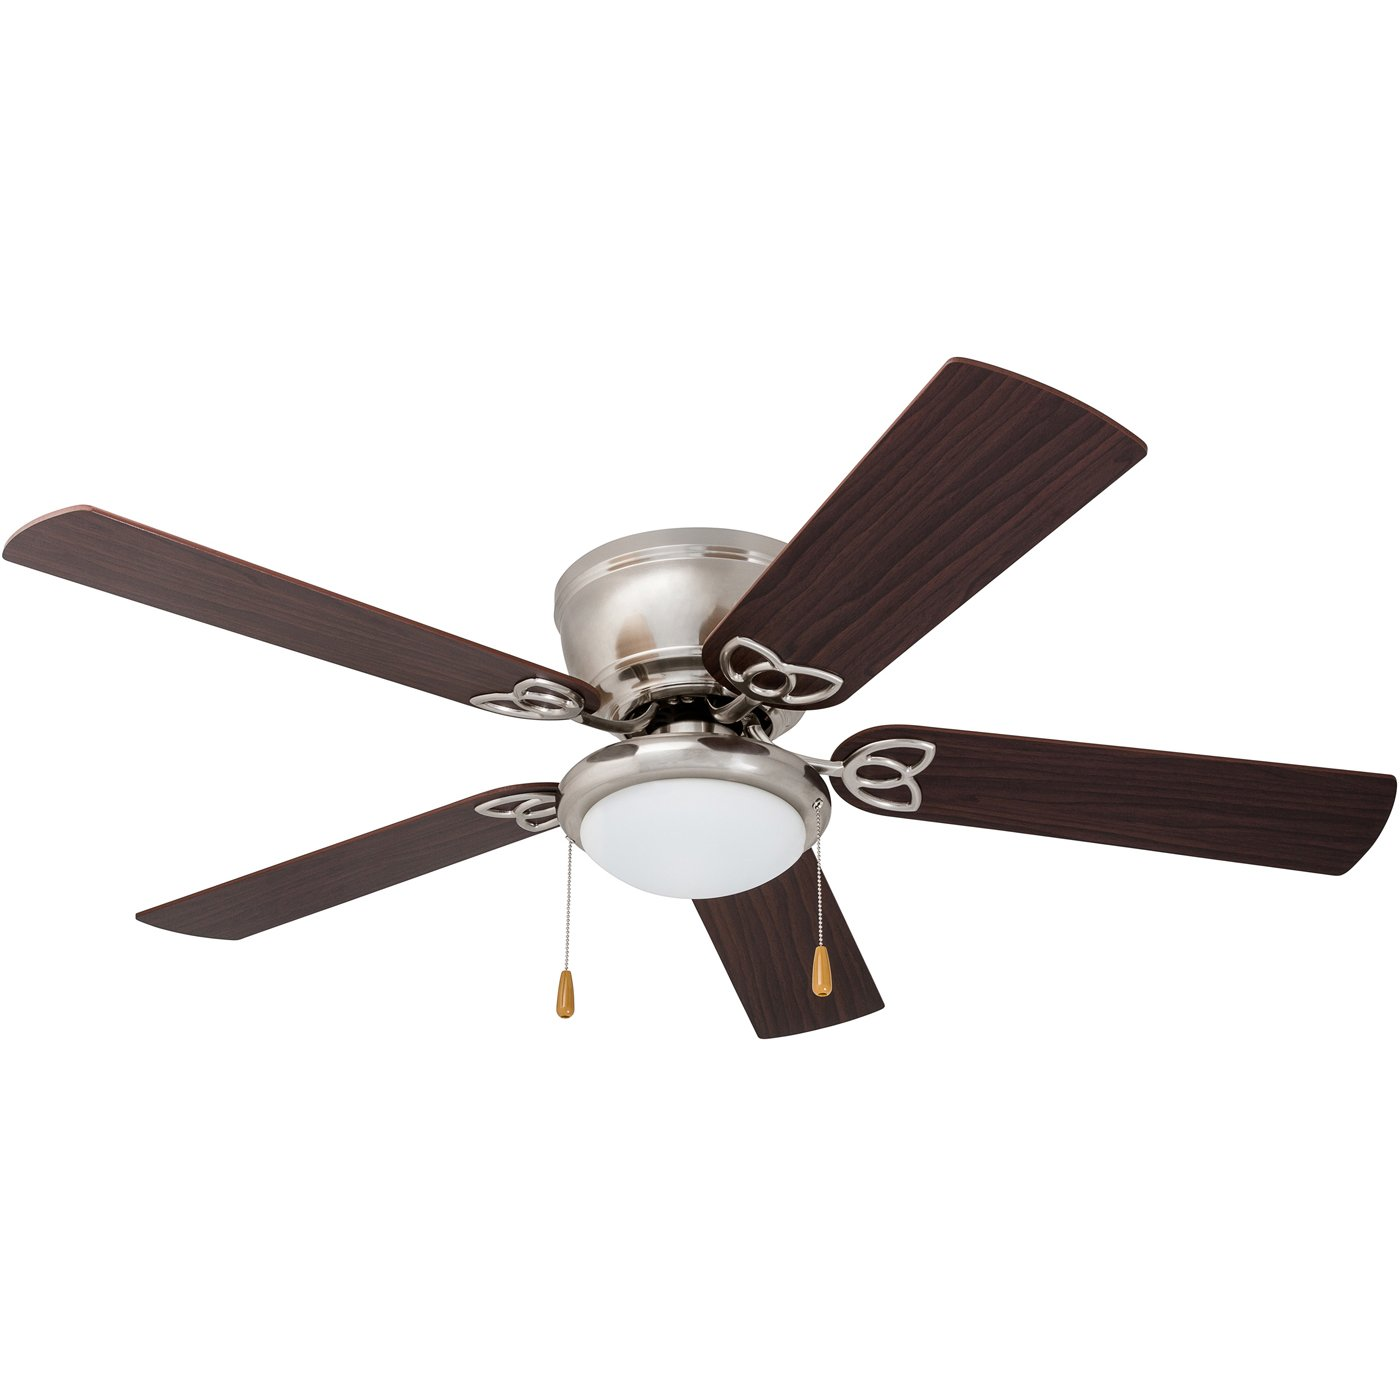 Prominence Home 51428 Benton Hugger Low Profile Ceiling Fan, 52 Walnut Maple Blades, LED Globe Light, Brushed Nickel